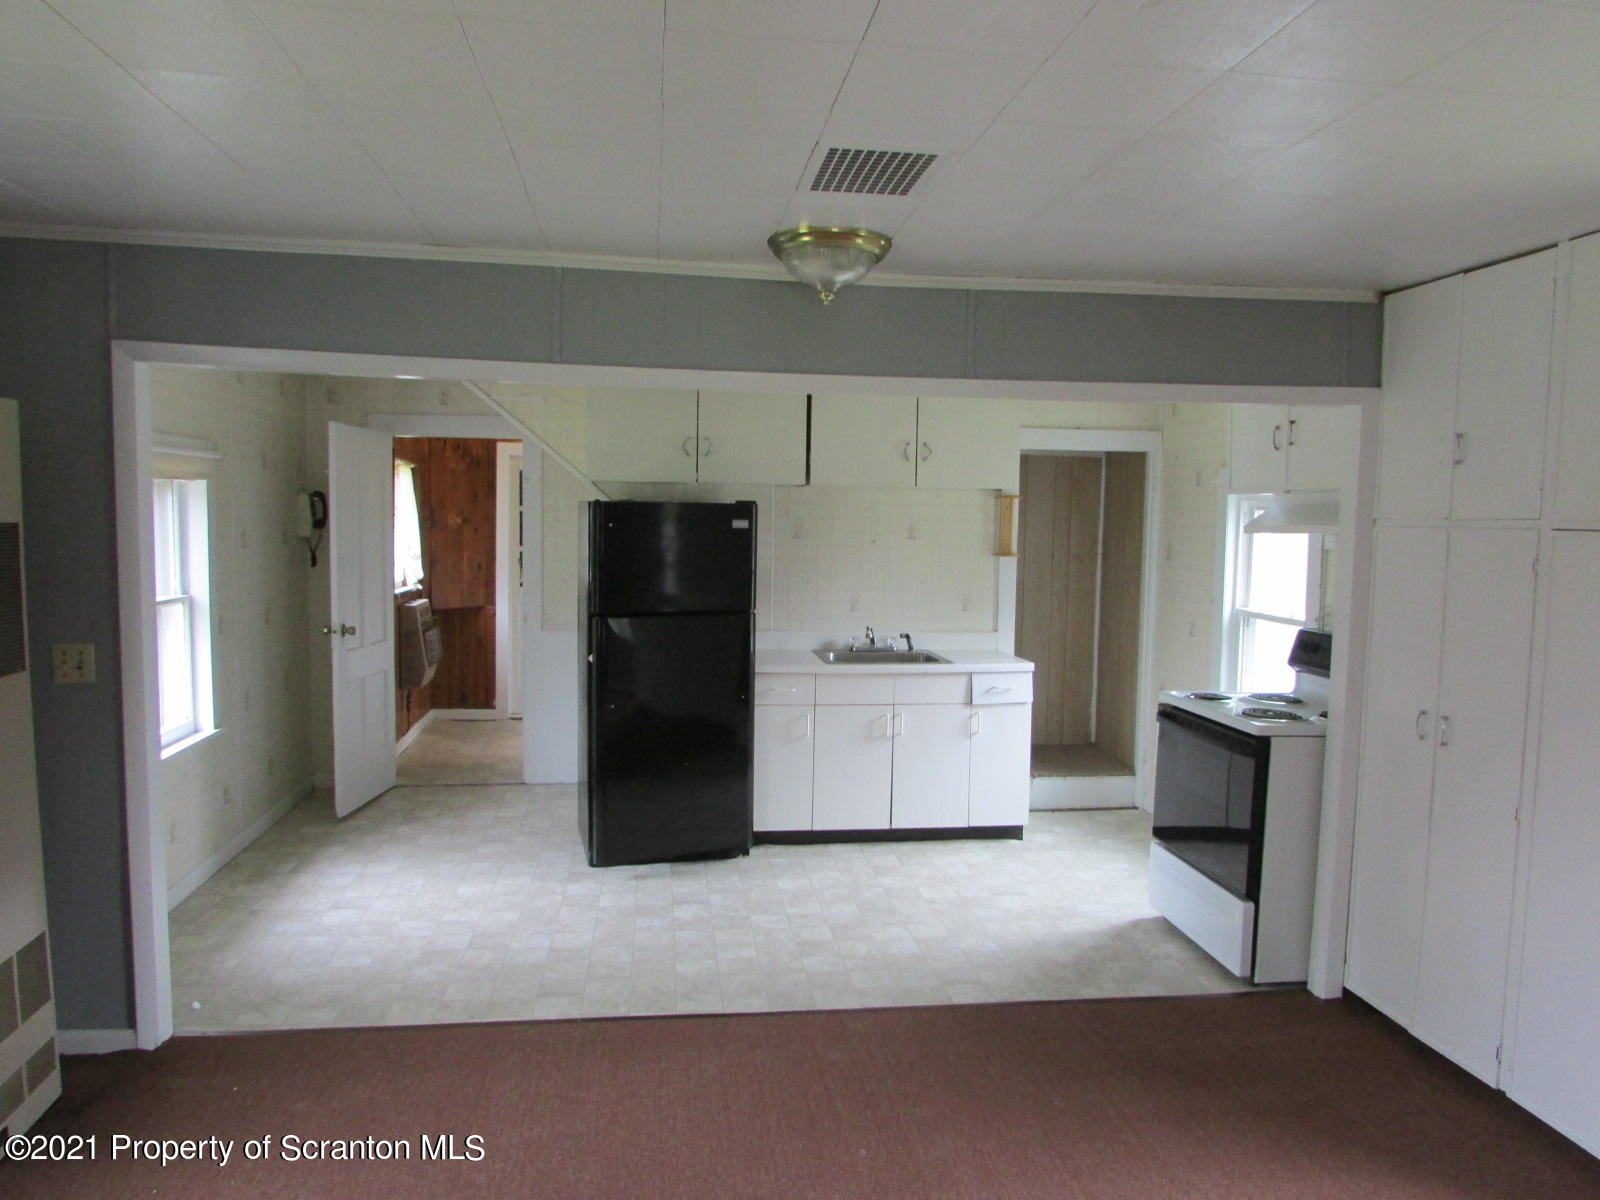 14805 State Route 92, Jackson, Pennsylvania 18825, 3 Bedrooms Bedrooms, 6 Rooms Rooms,1 BathroomBathrooms,Single Family,For Sale,State Route 92,21-1645